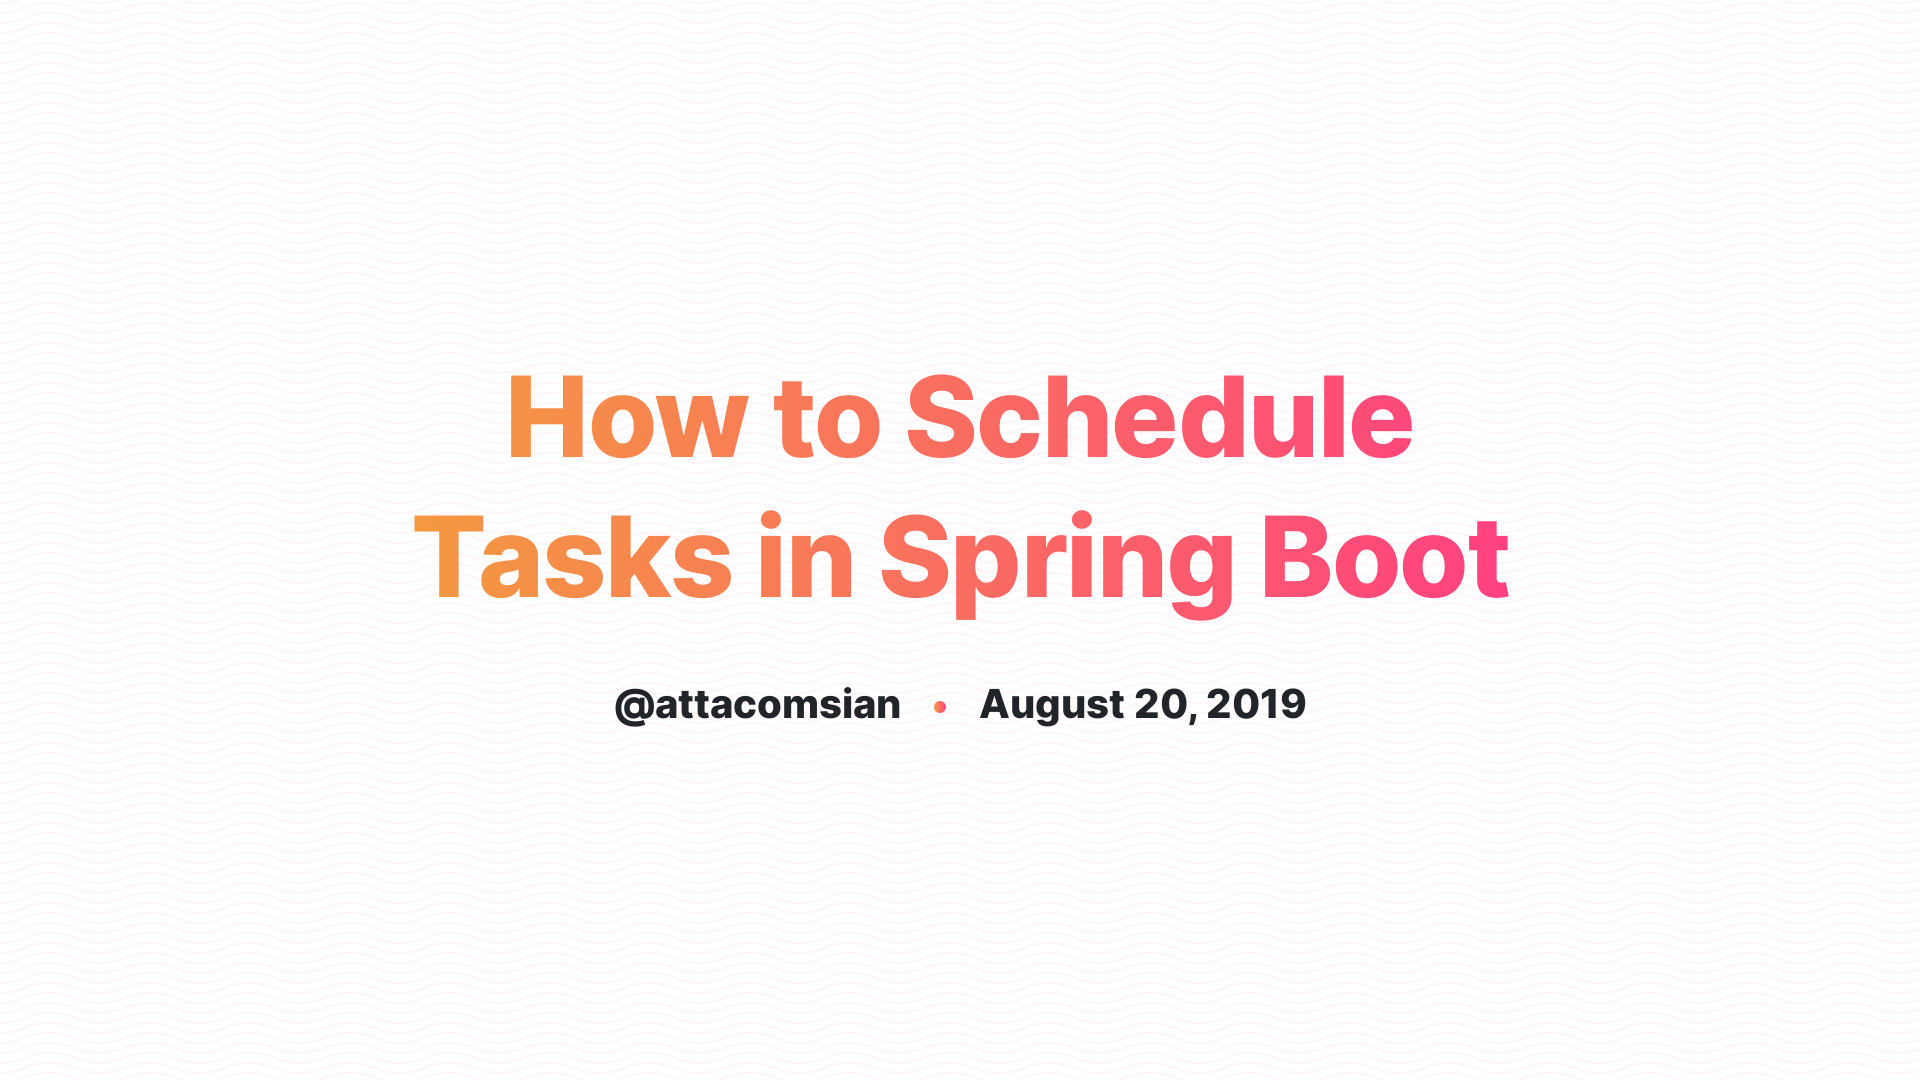 Task Scheduling in Spring Boot